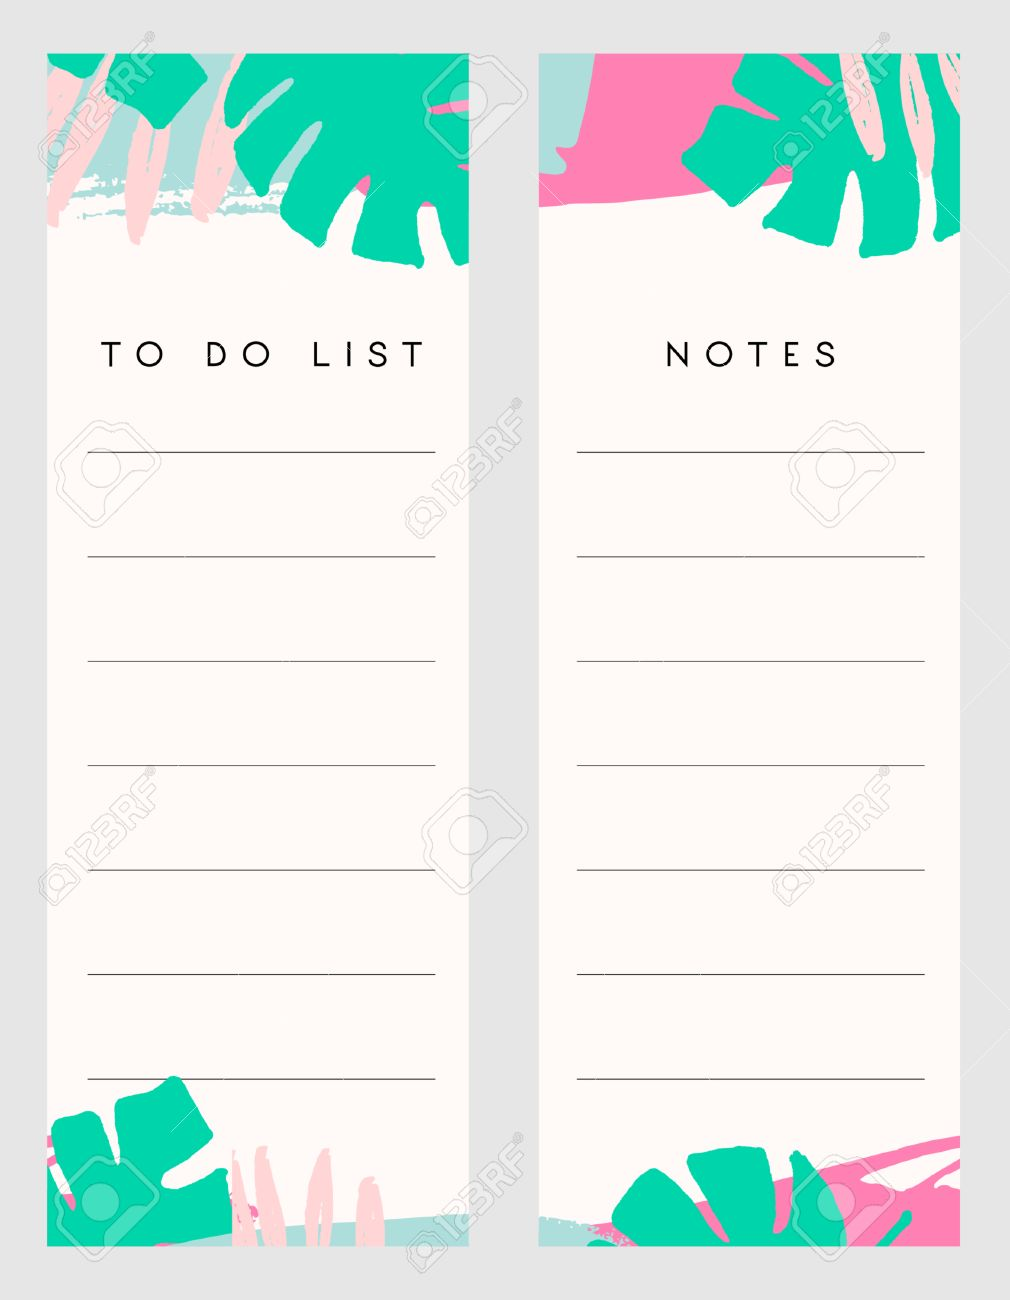 printable notes and to do list template designs decorated with hand drawn green tropical leaves and